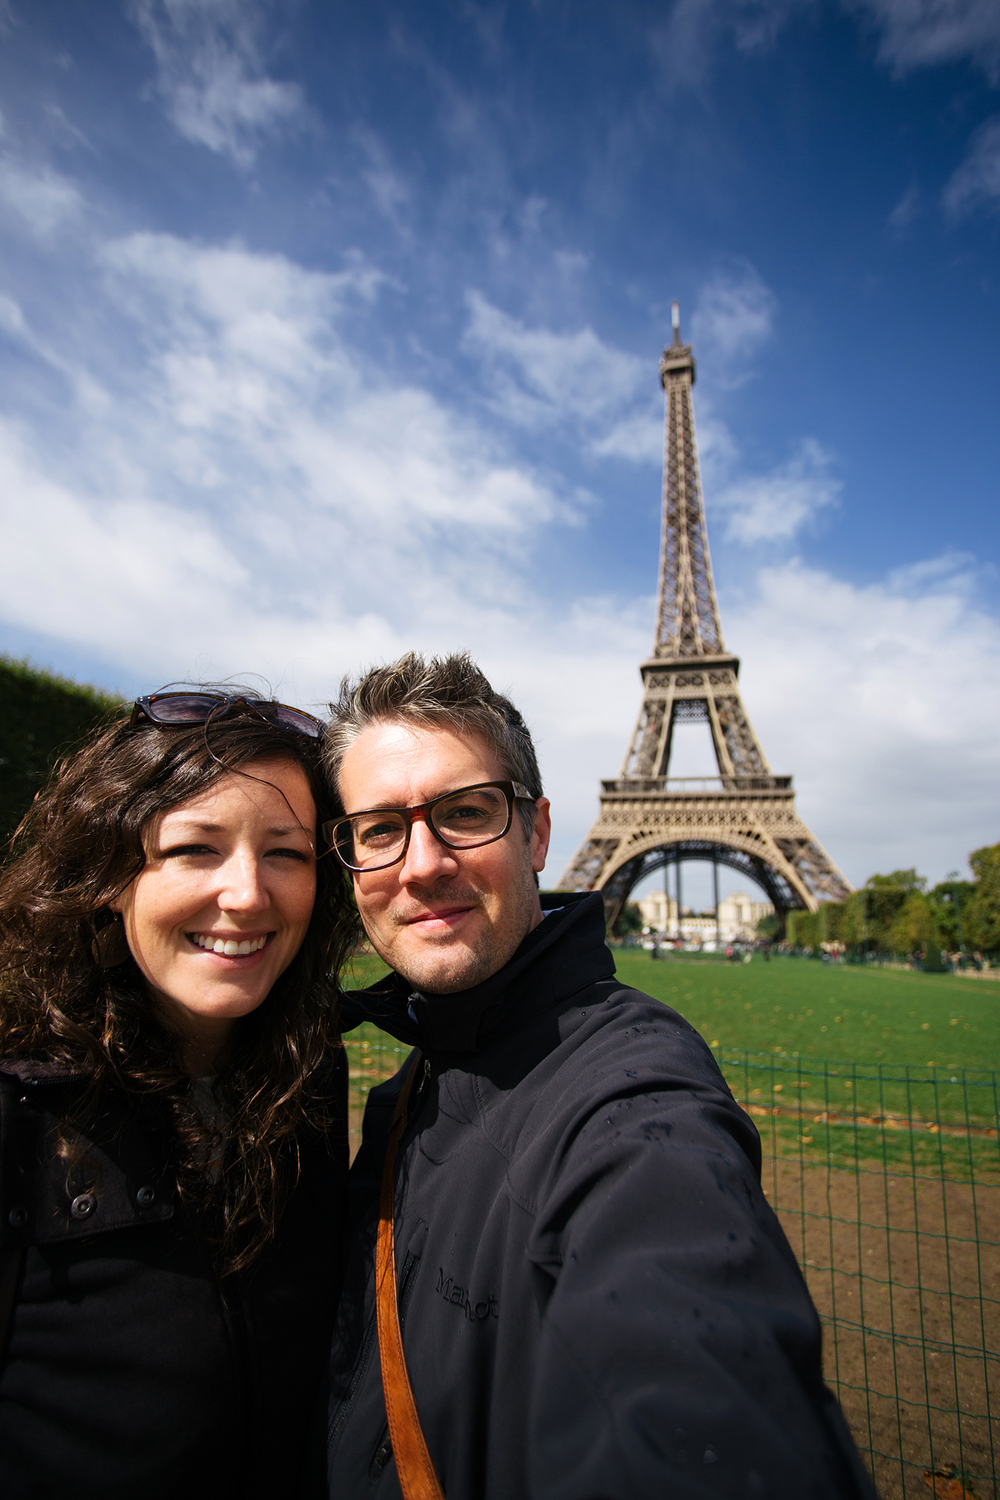 Paris Travel Guide via Delighted